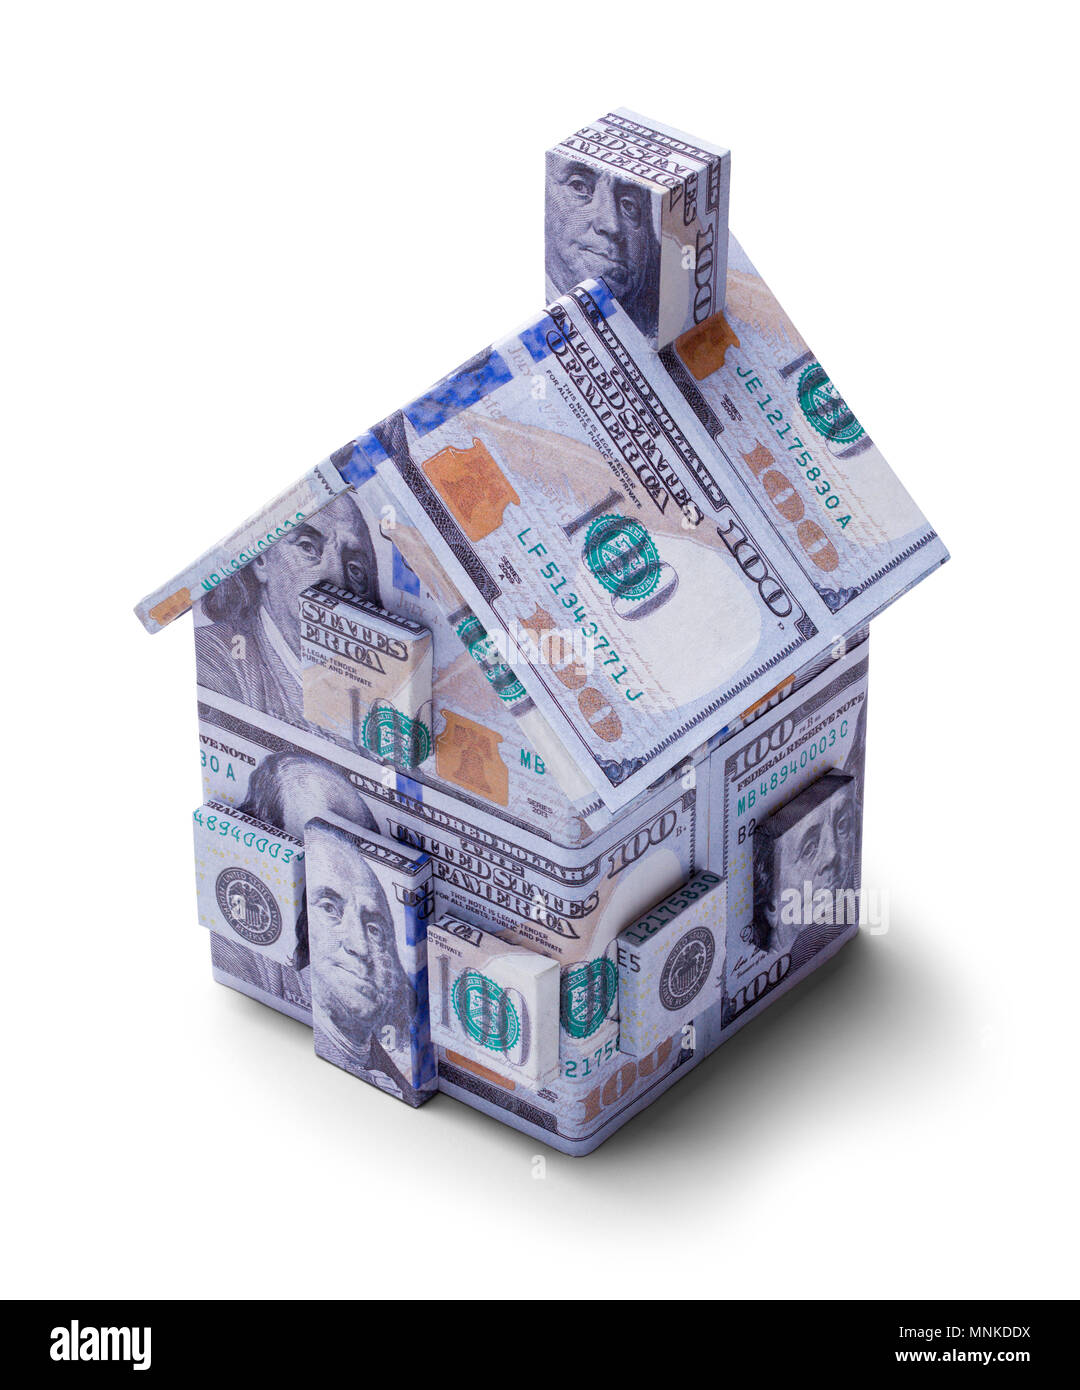 House Covered on One Hundred Dollar Bills Isolated on a White Background. - Stock Image